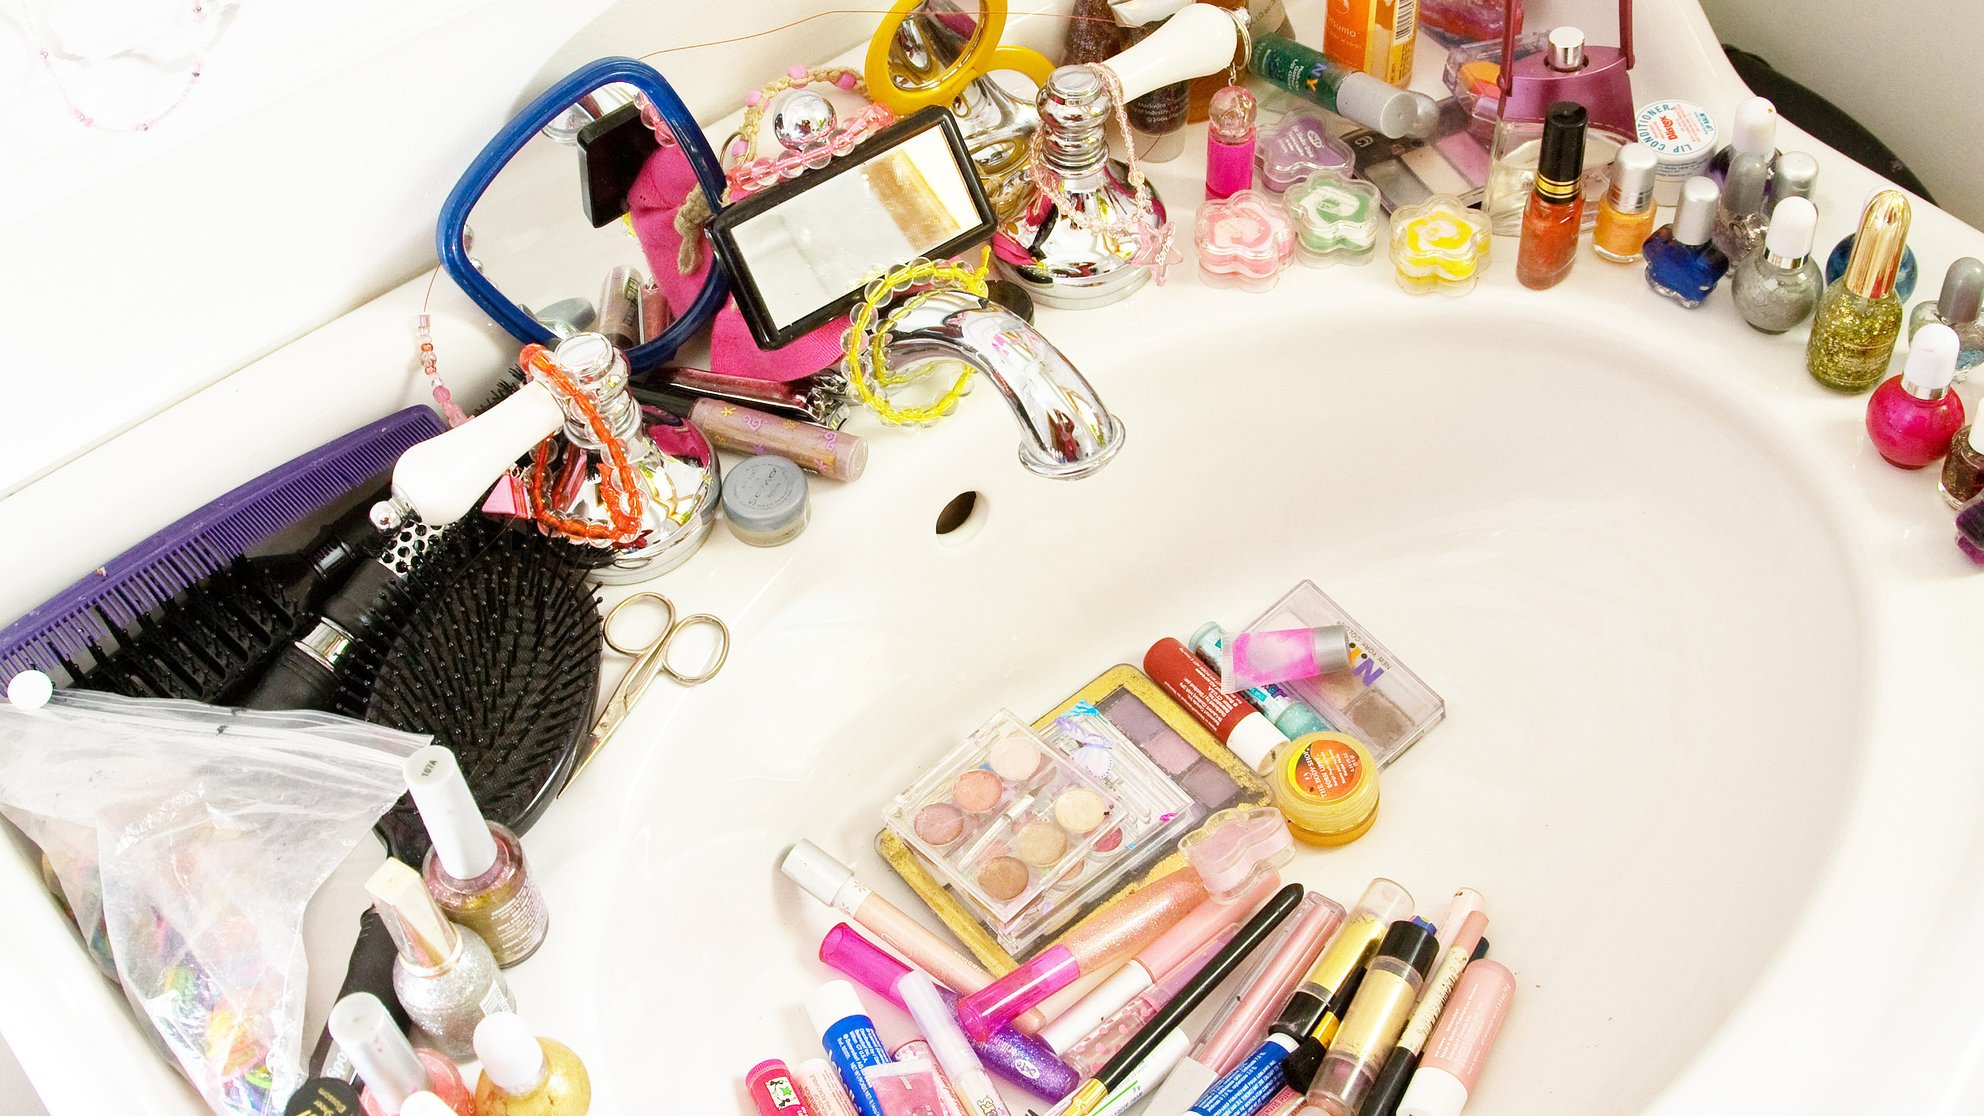 Getting clutter out of your bathroom is a necessary step to creating a clean, organized room.